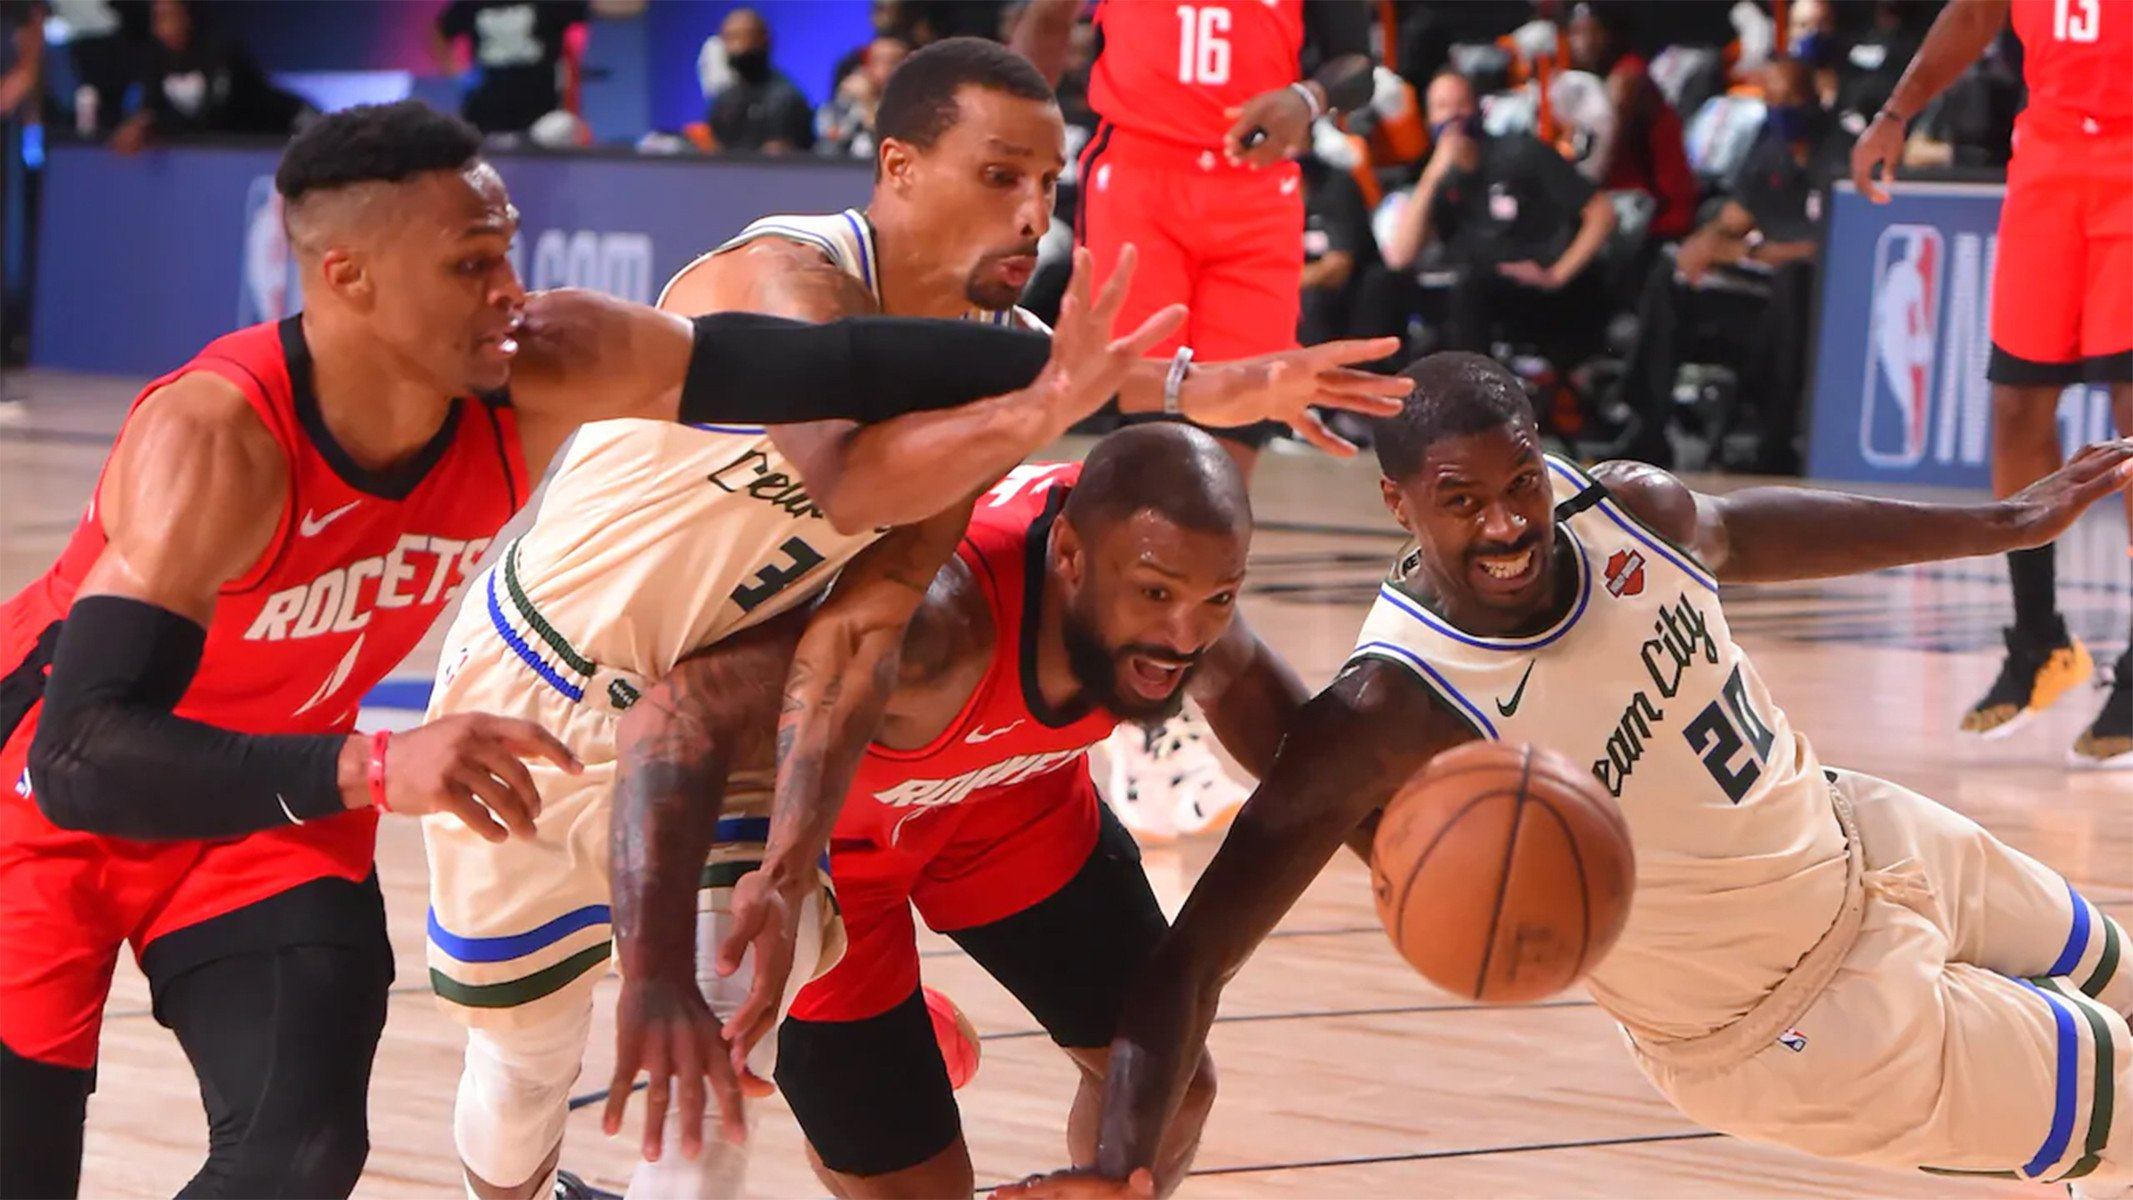 Hasil Pertandingan NBA Hari Ini: Houston Rockets Hantam Milwaukee Bucks - JPNN.com